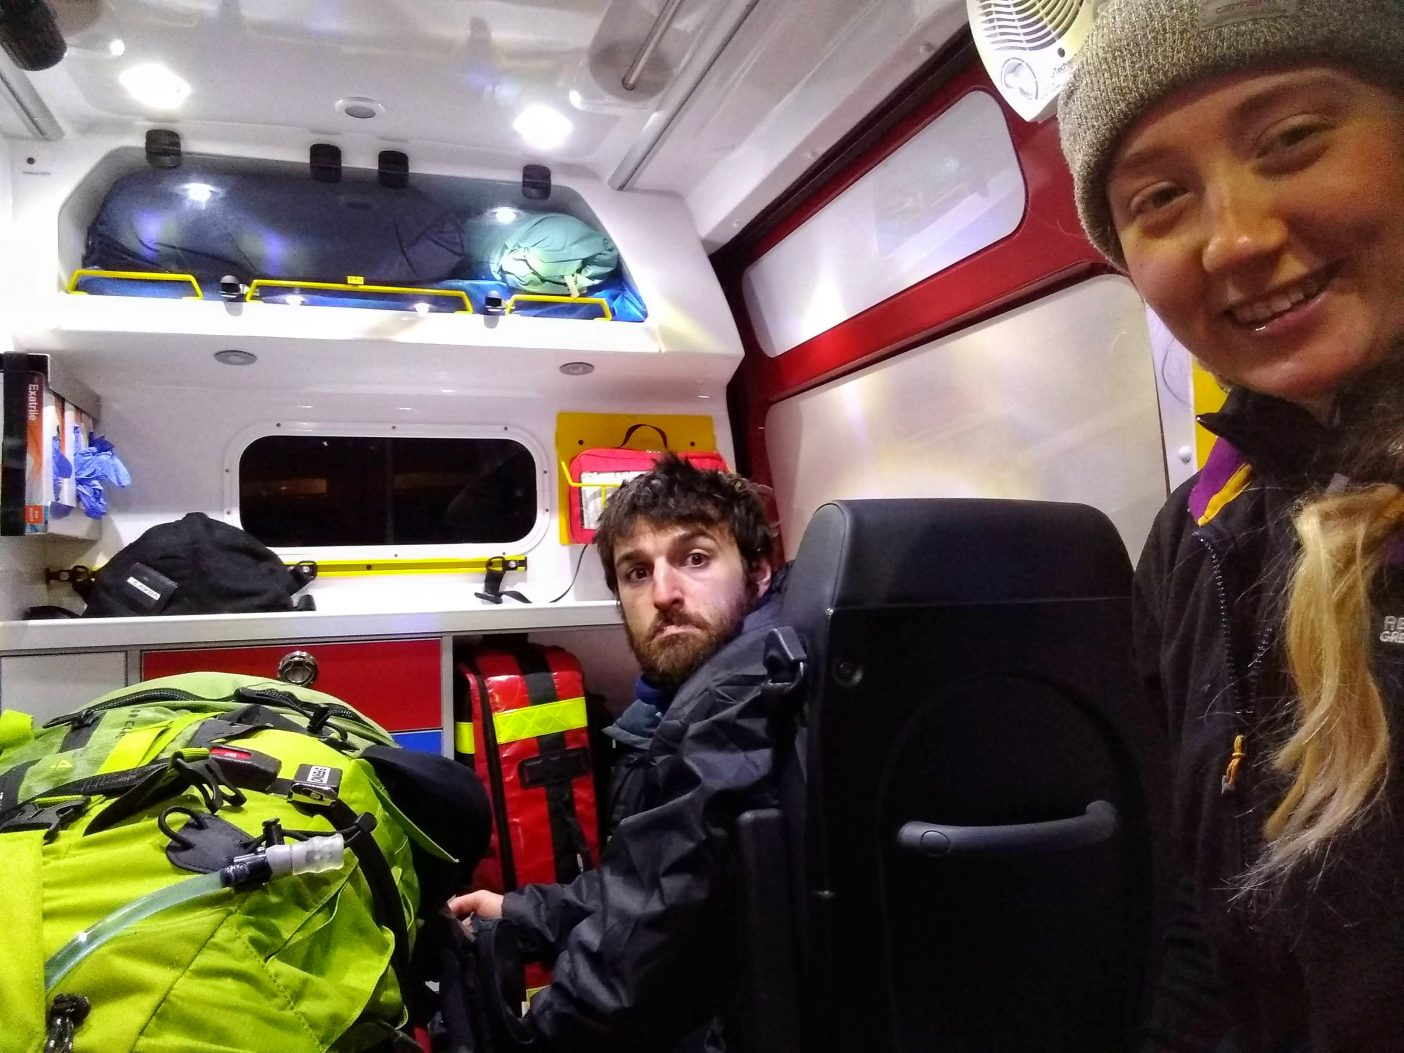 Two hikers in mountain rescue ambulance